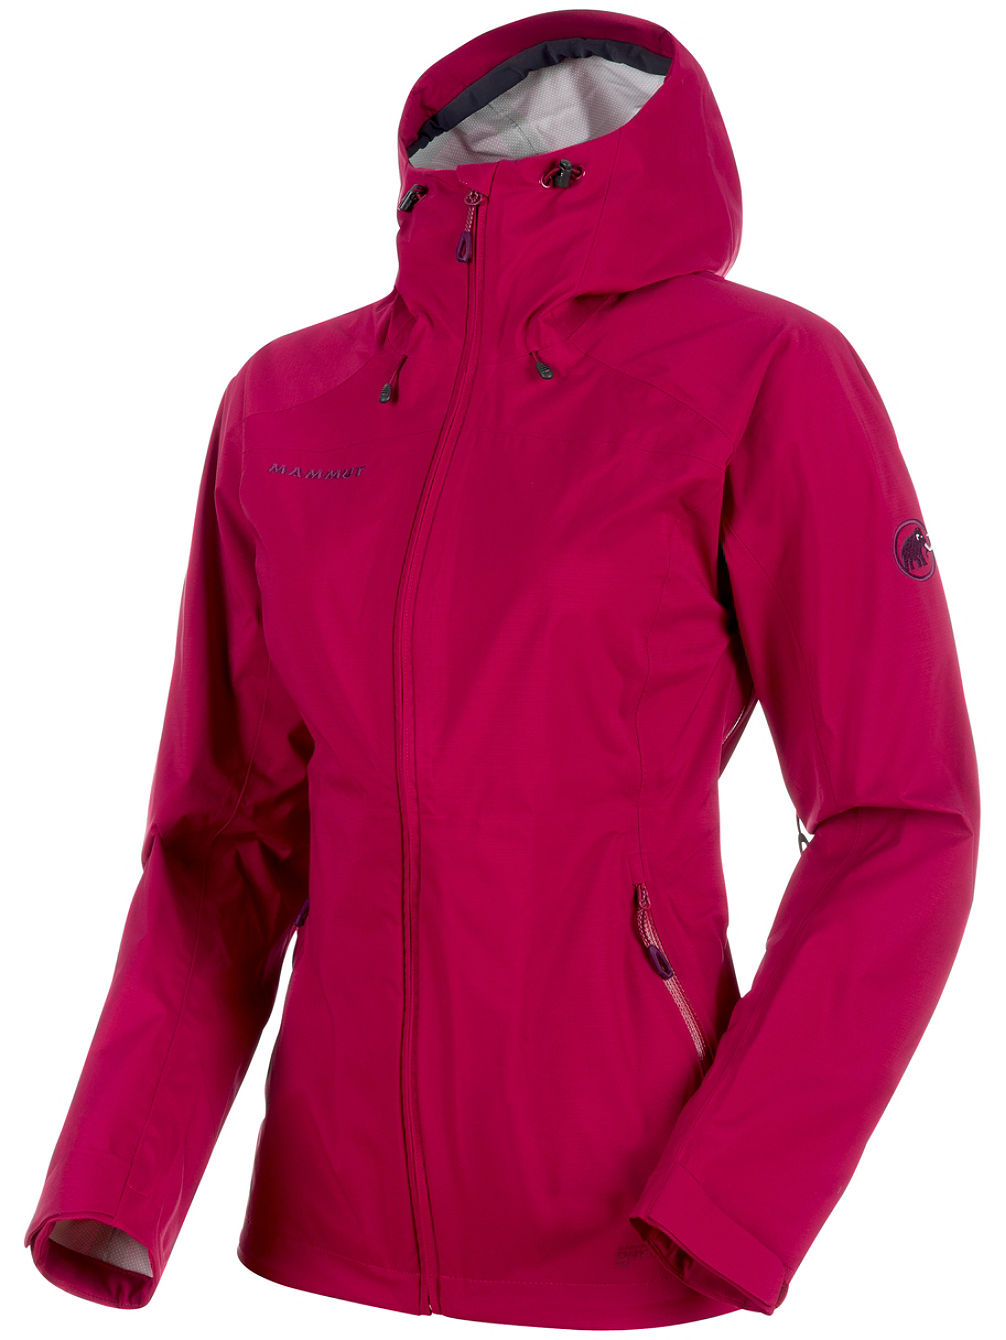 Keiko Hs Hooded Outdoor Jacket